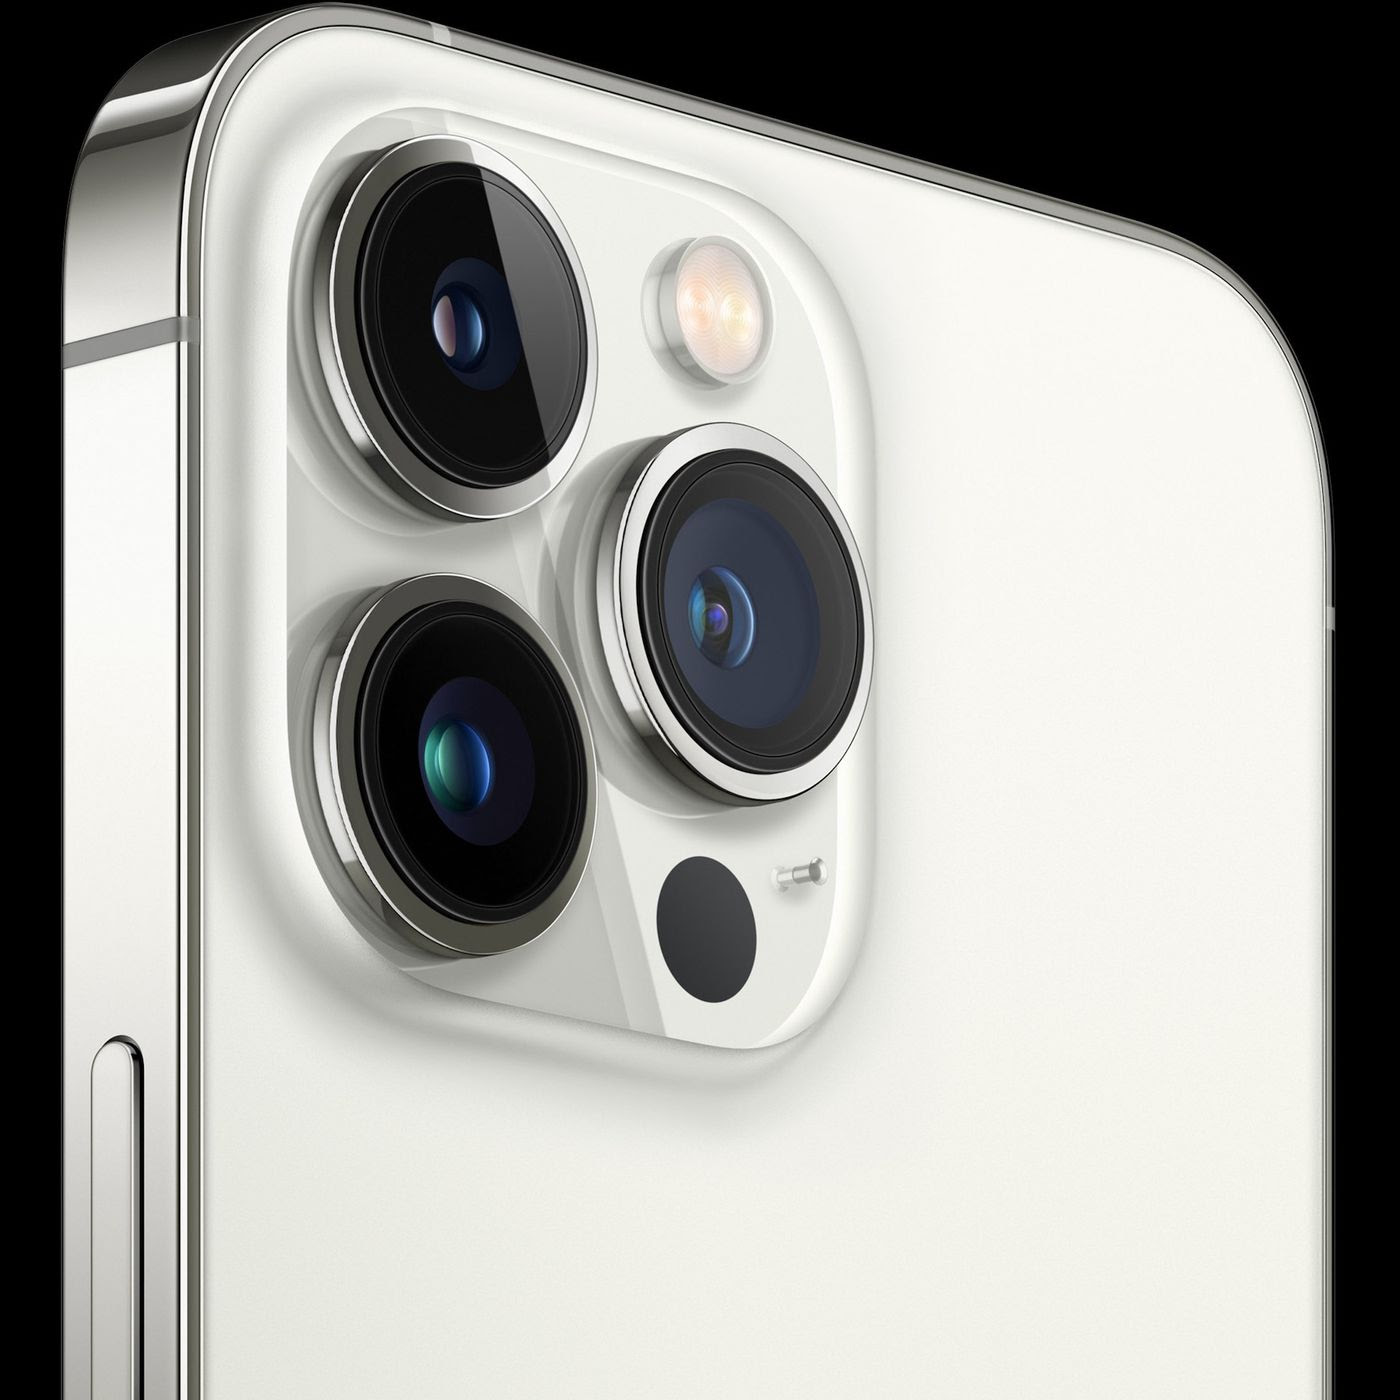 Apple says it every year, but the iPhone 13 cameras do seem much improved